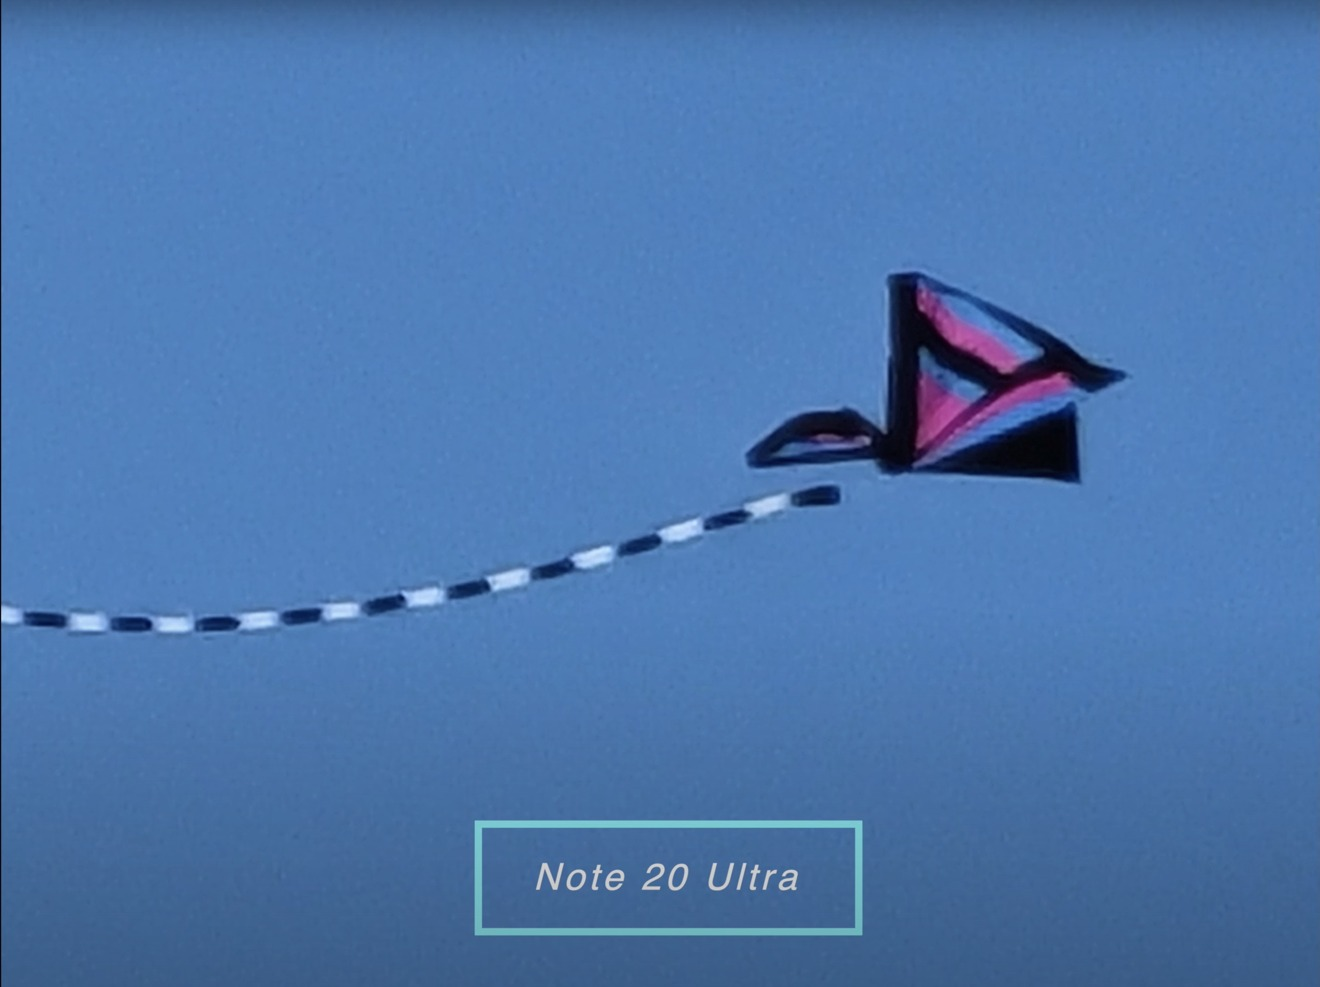 The Note 20 Ultra at 50X is even better than both